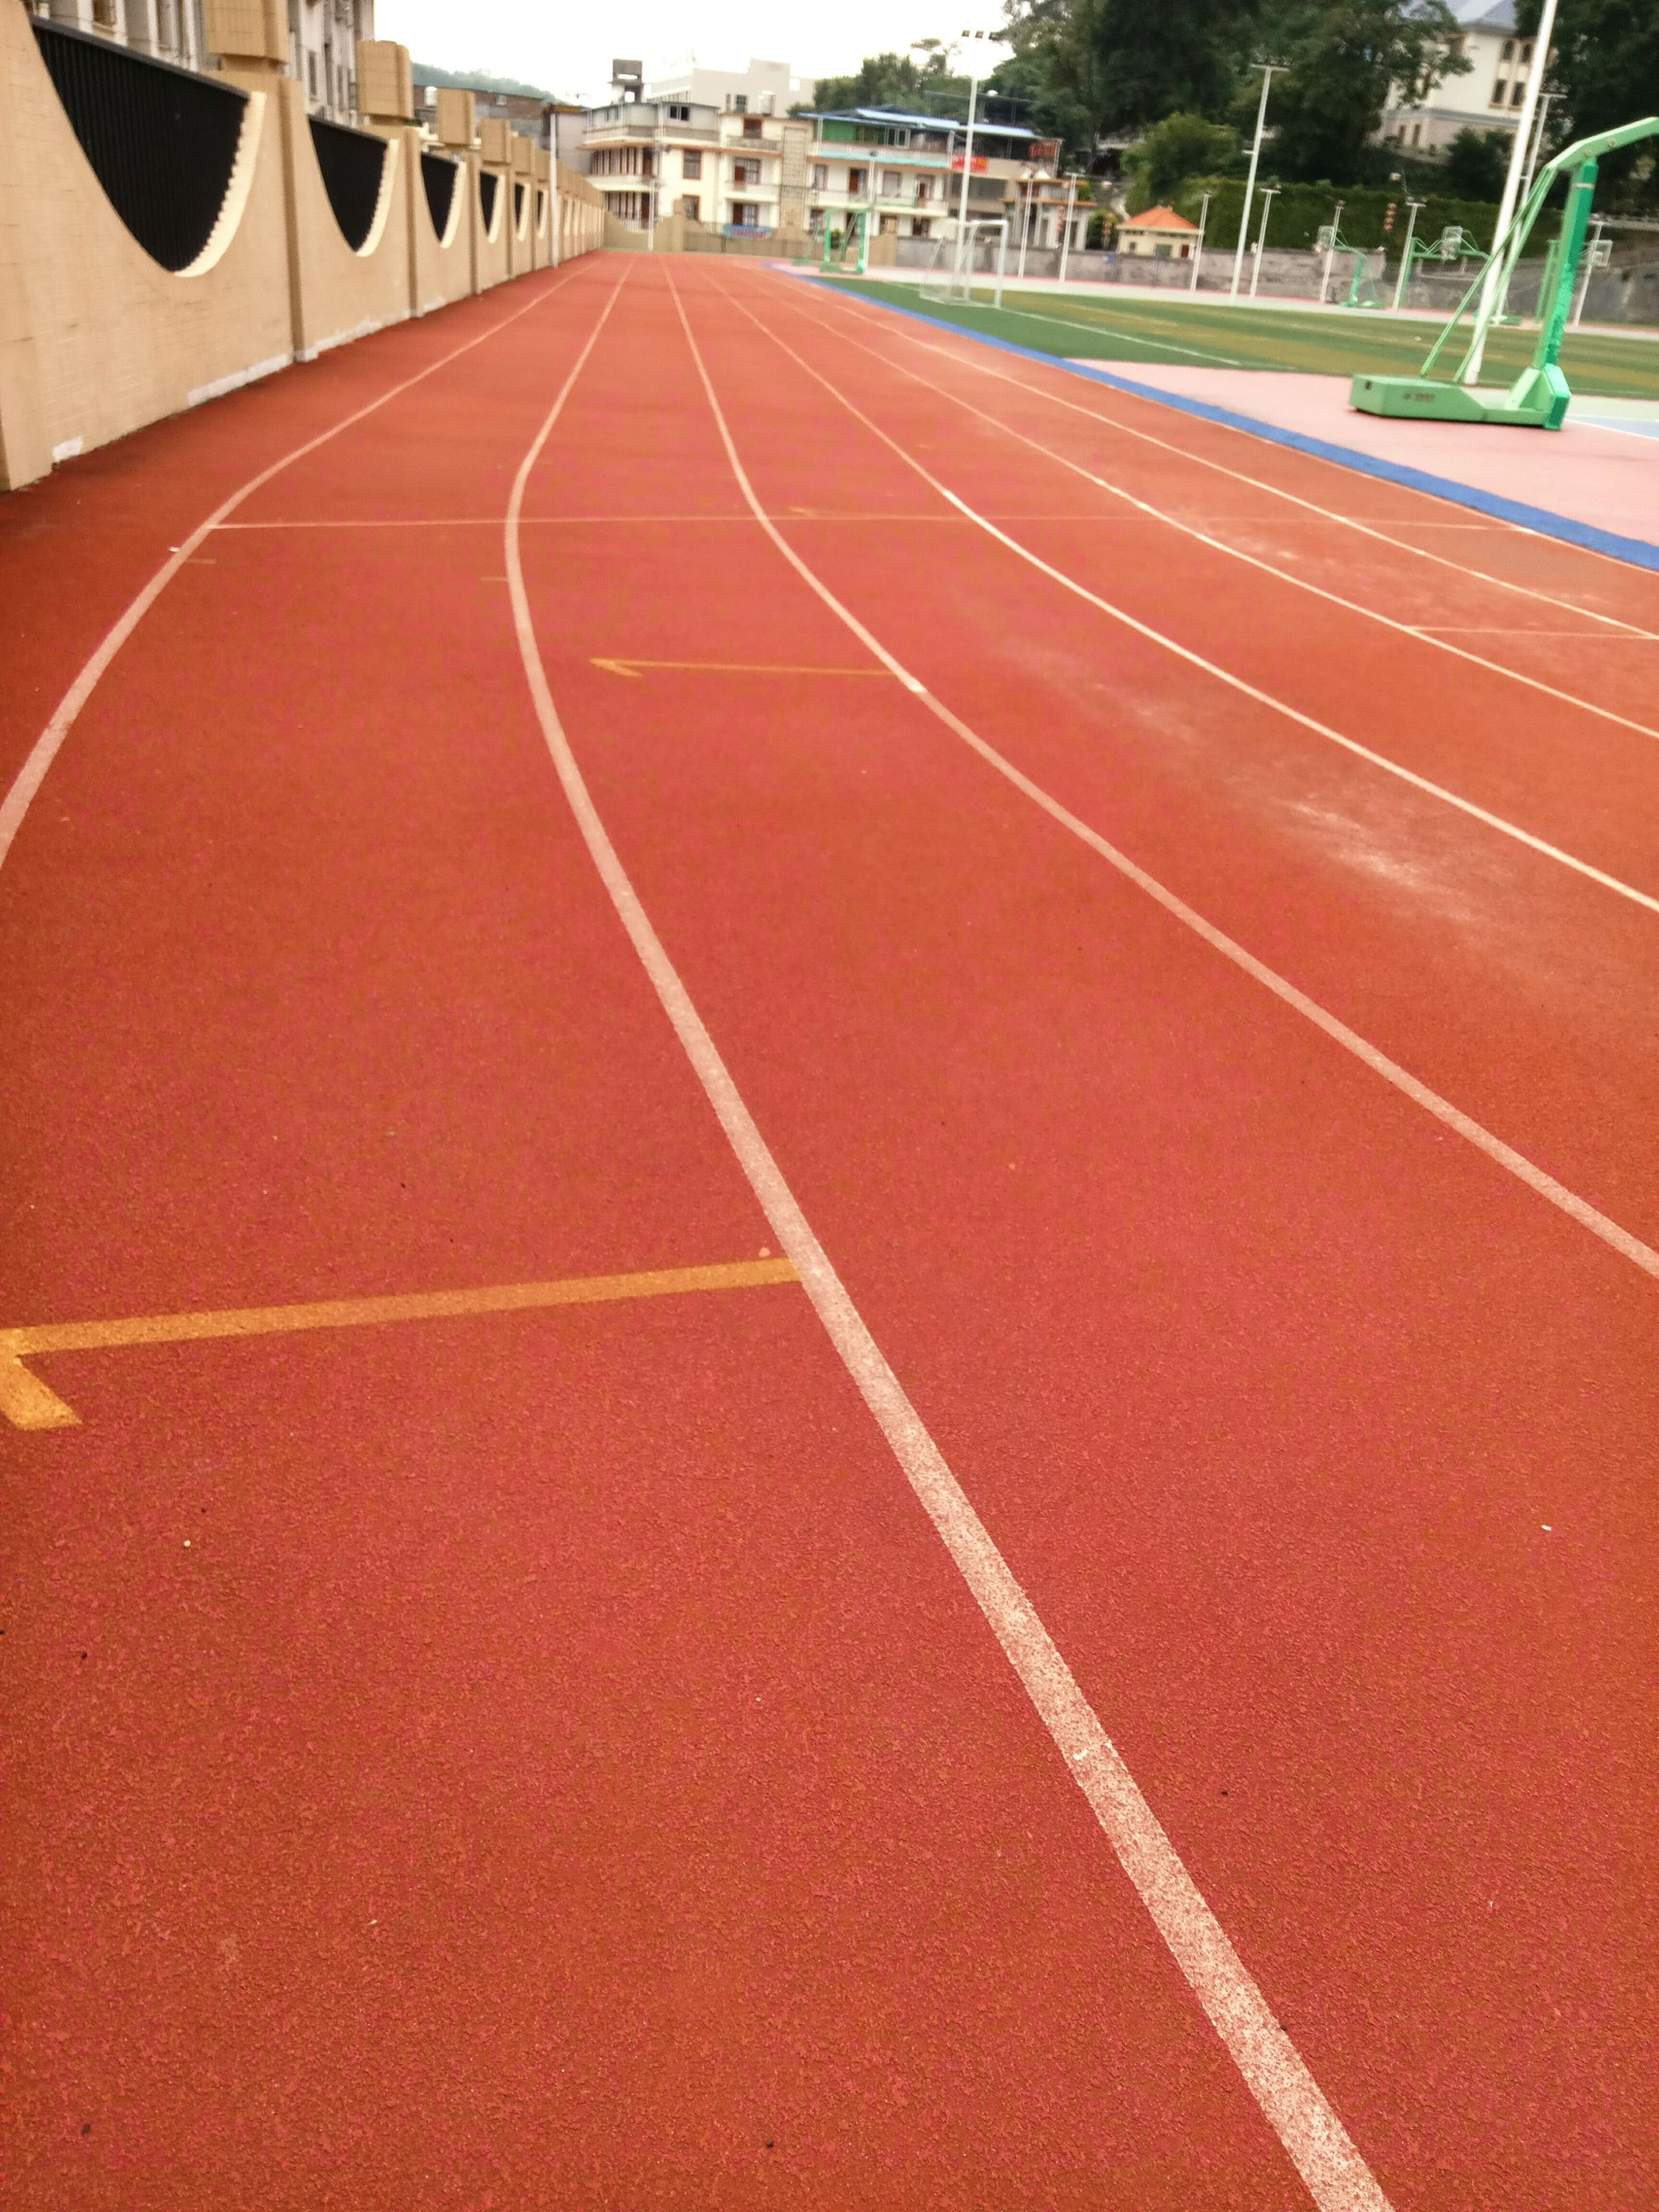 running track, track and field, sport, sports track, red, empty, competition, day, single line, track, playing field, outdoors, dividing line, diminishing perspective, no people, tranquility, tranquil scene, surface level